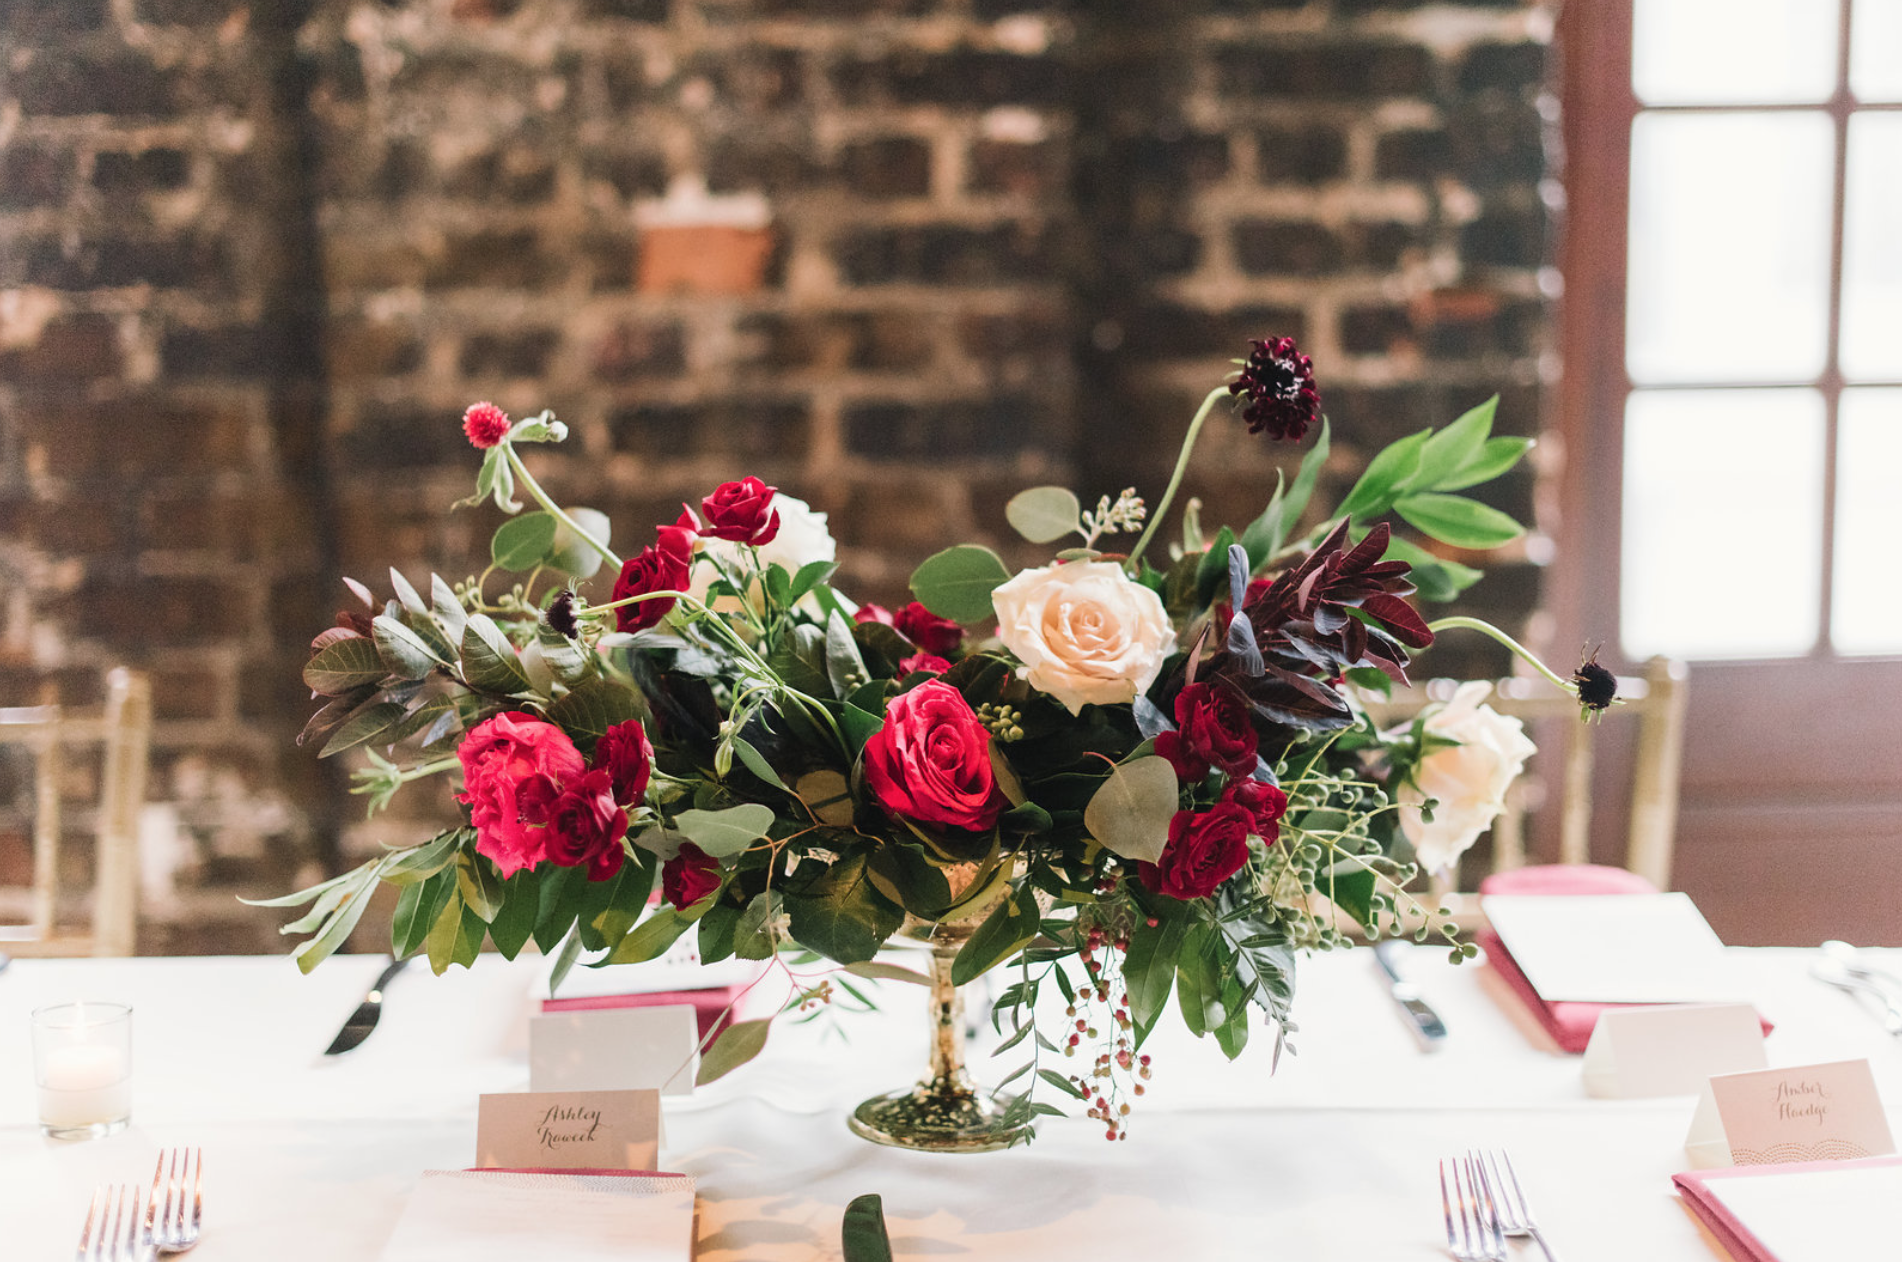 A close-up of the compote arrangement featuring roses and greenery. Florals by Maxit Flower Design. Red based floral arrangements.